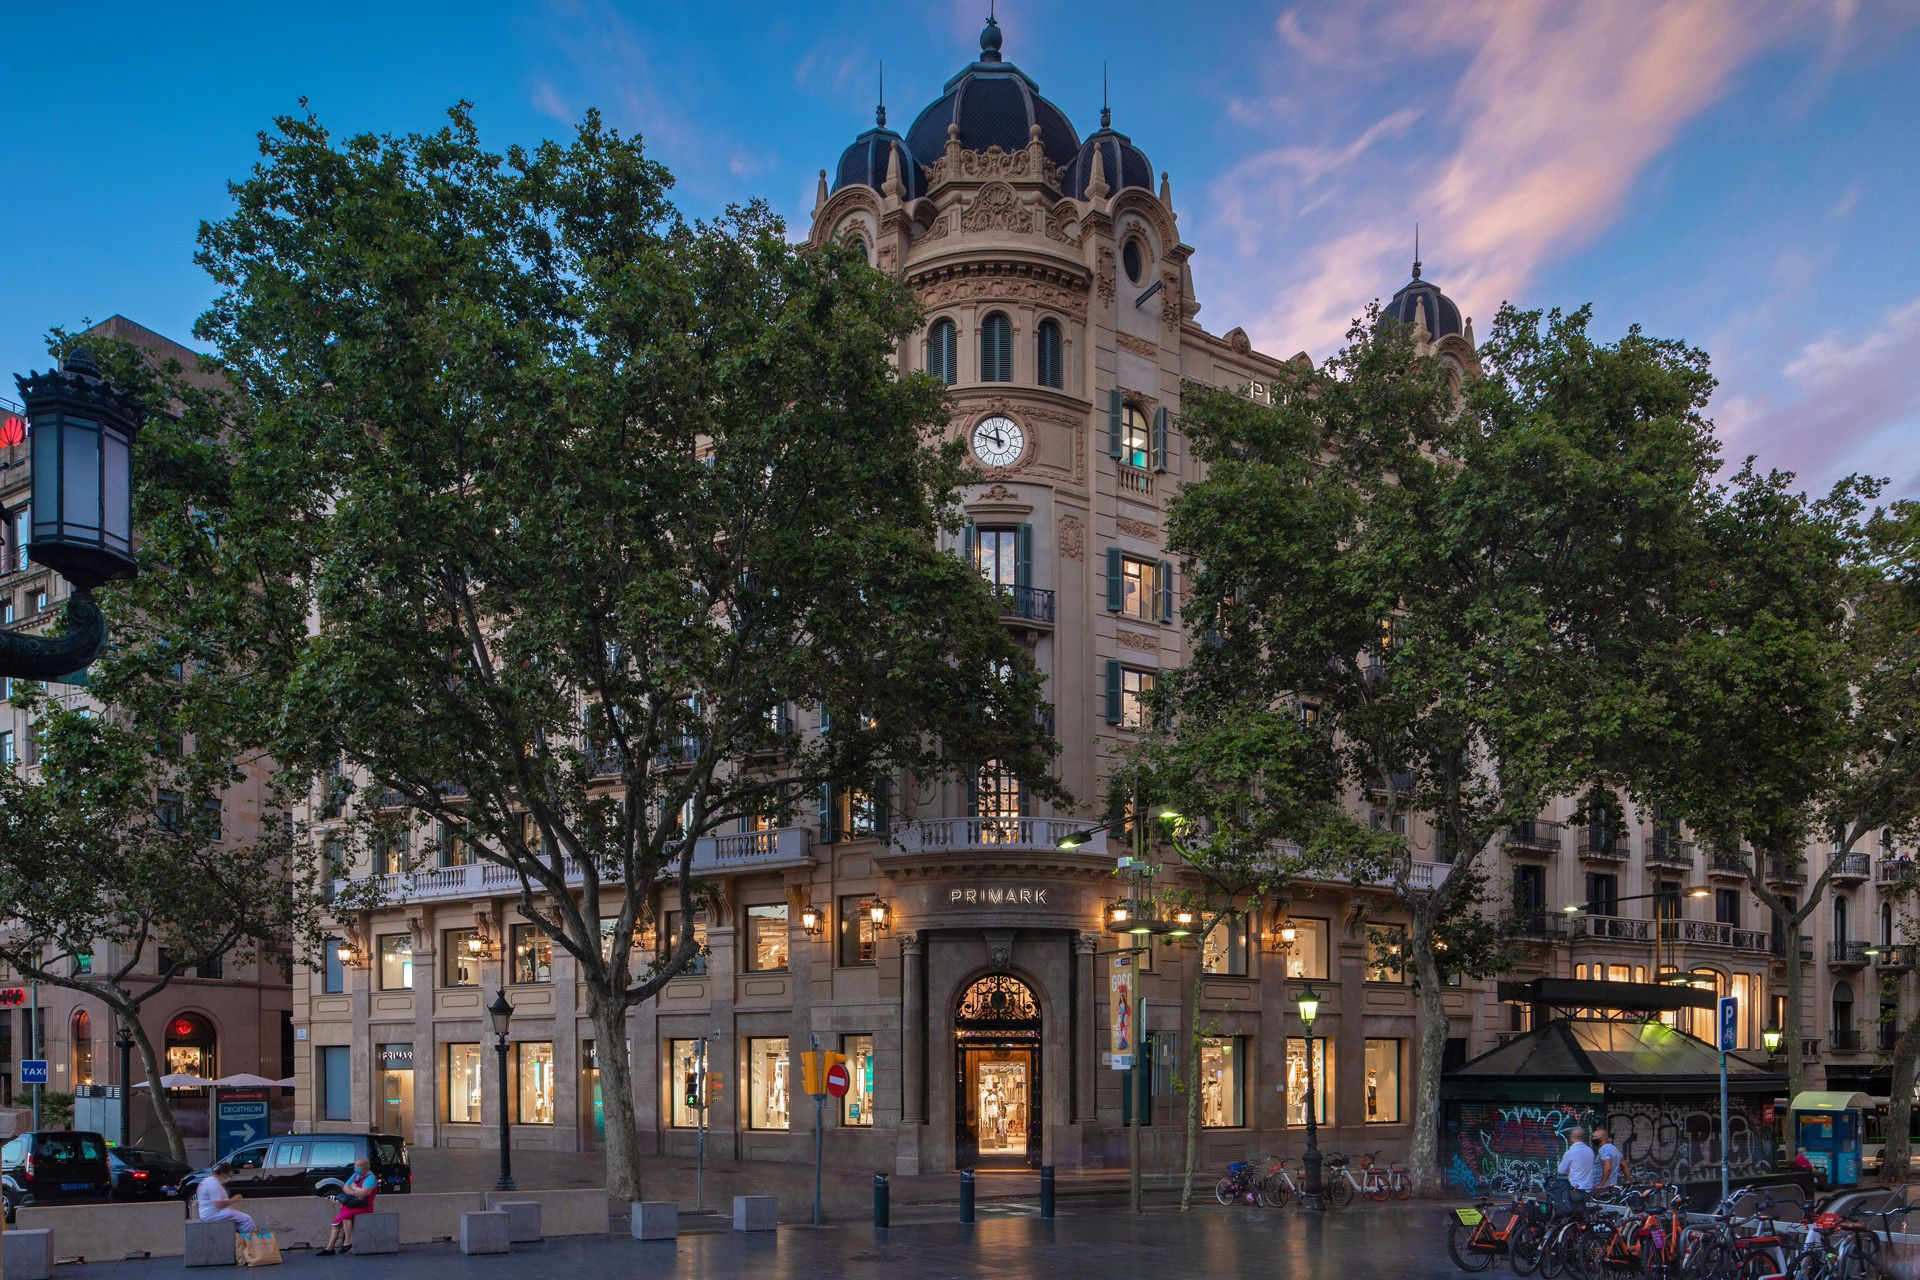 Primark-s-flagship-Barcelona-store-which-sits-at-the-heart-of-the-famous-Las-Ramblas-boulevard---Credit-Cloud9-Photography-Leeds